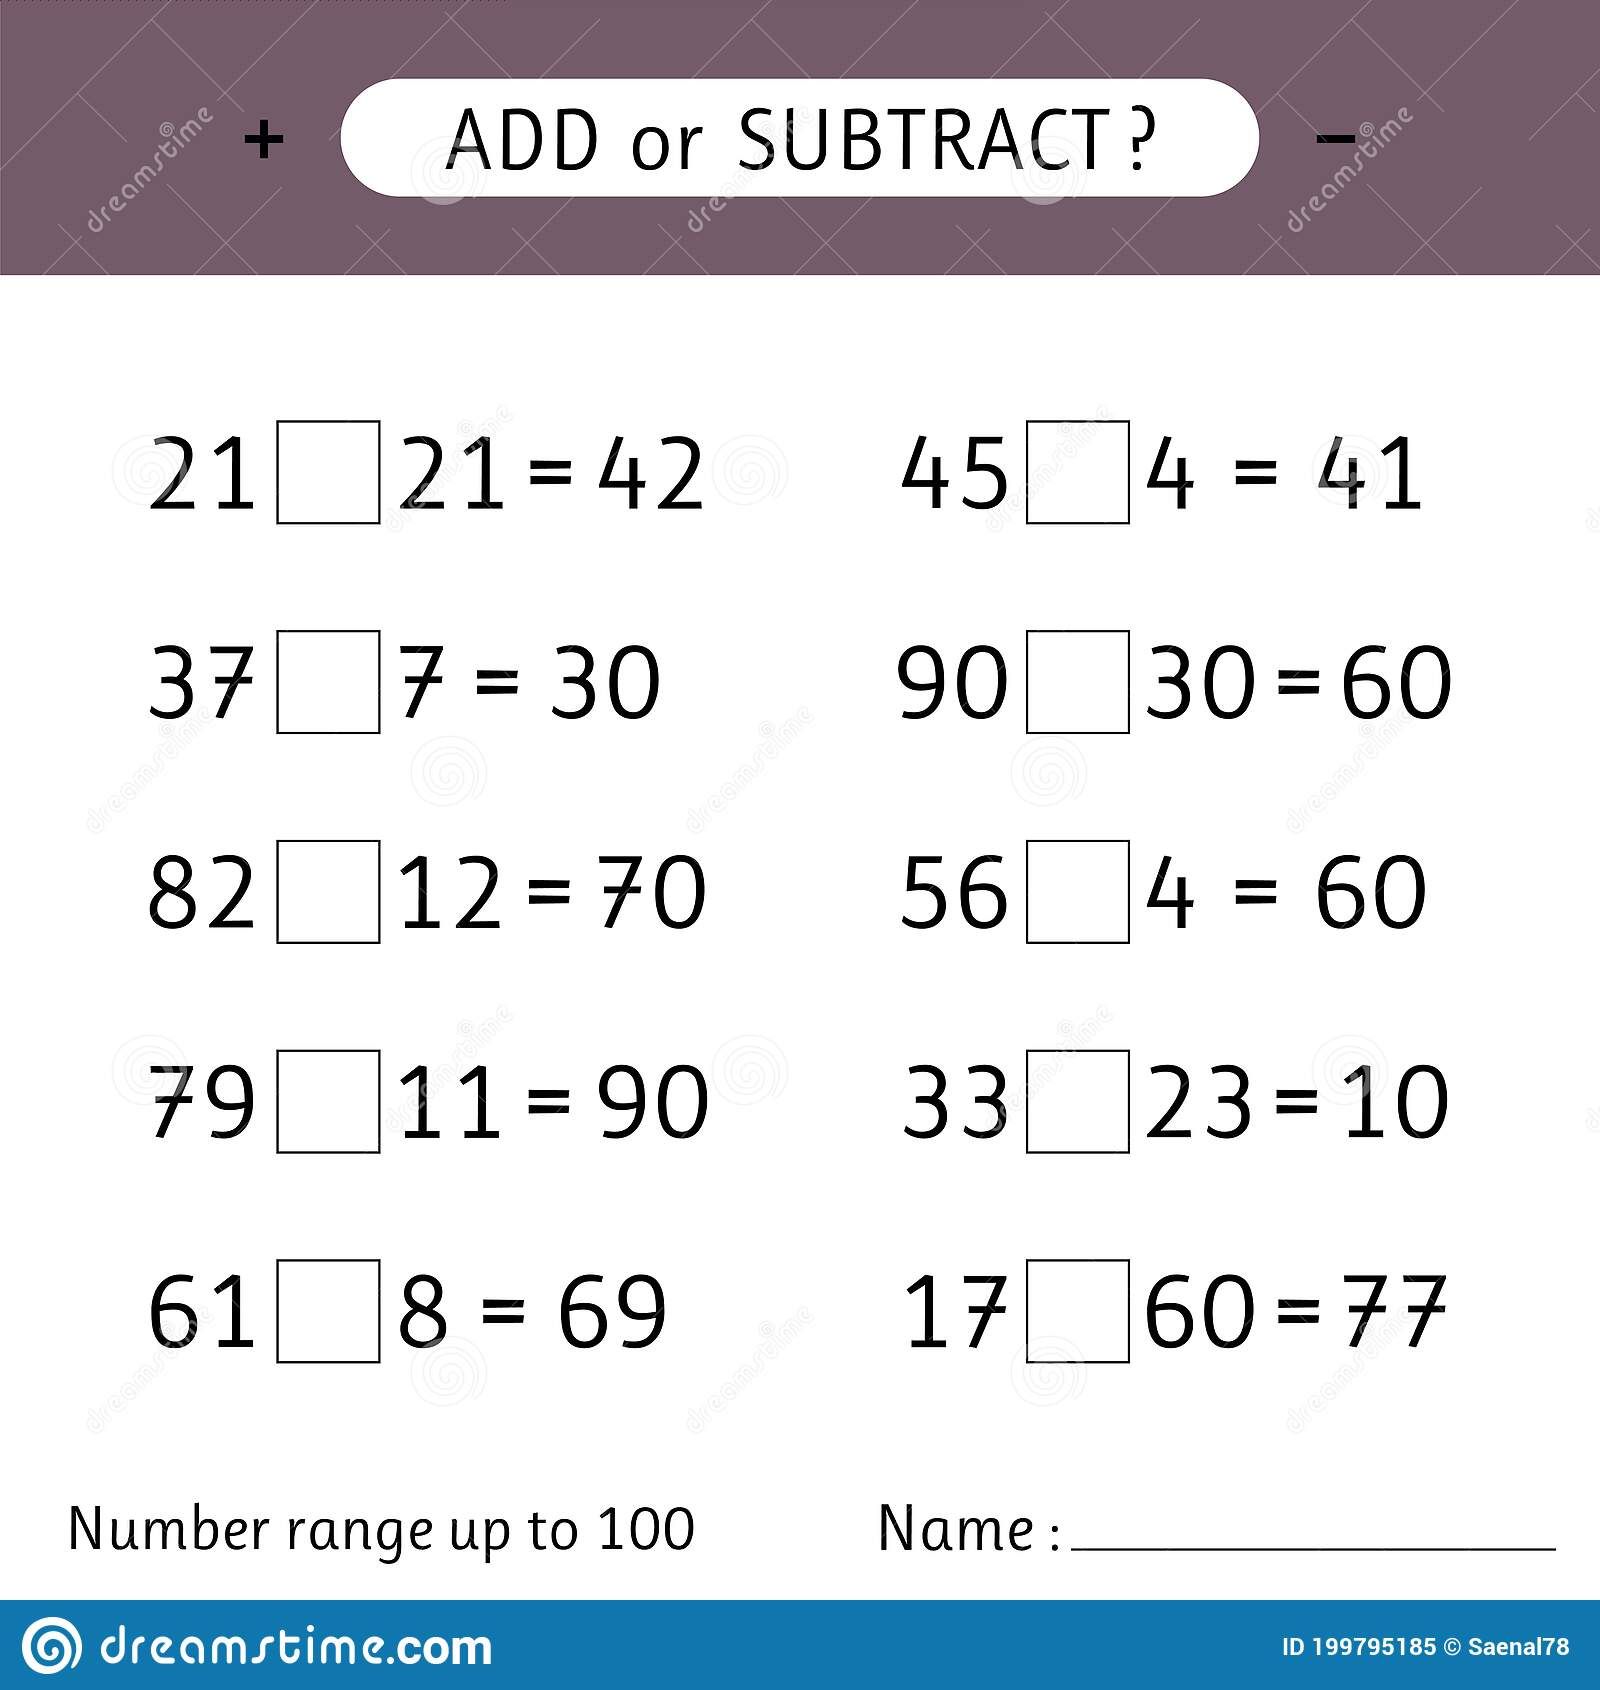 hight resolution of Add Or Subtract. Number Range Up To 100. Addition And Subtraction. Worksheet  For Kids. Mathematical Exercises Stock Vector - Illustration of game